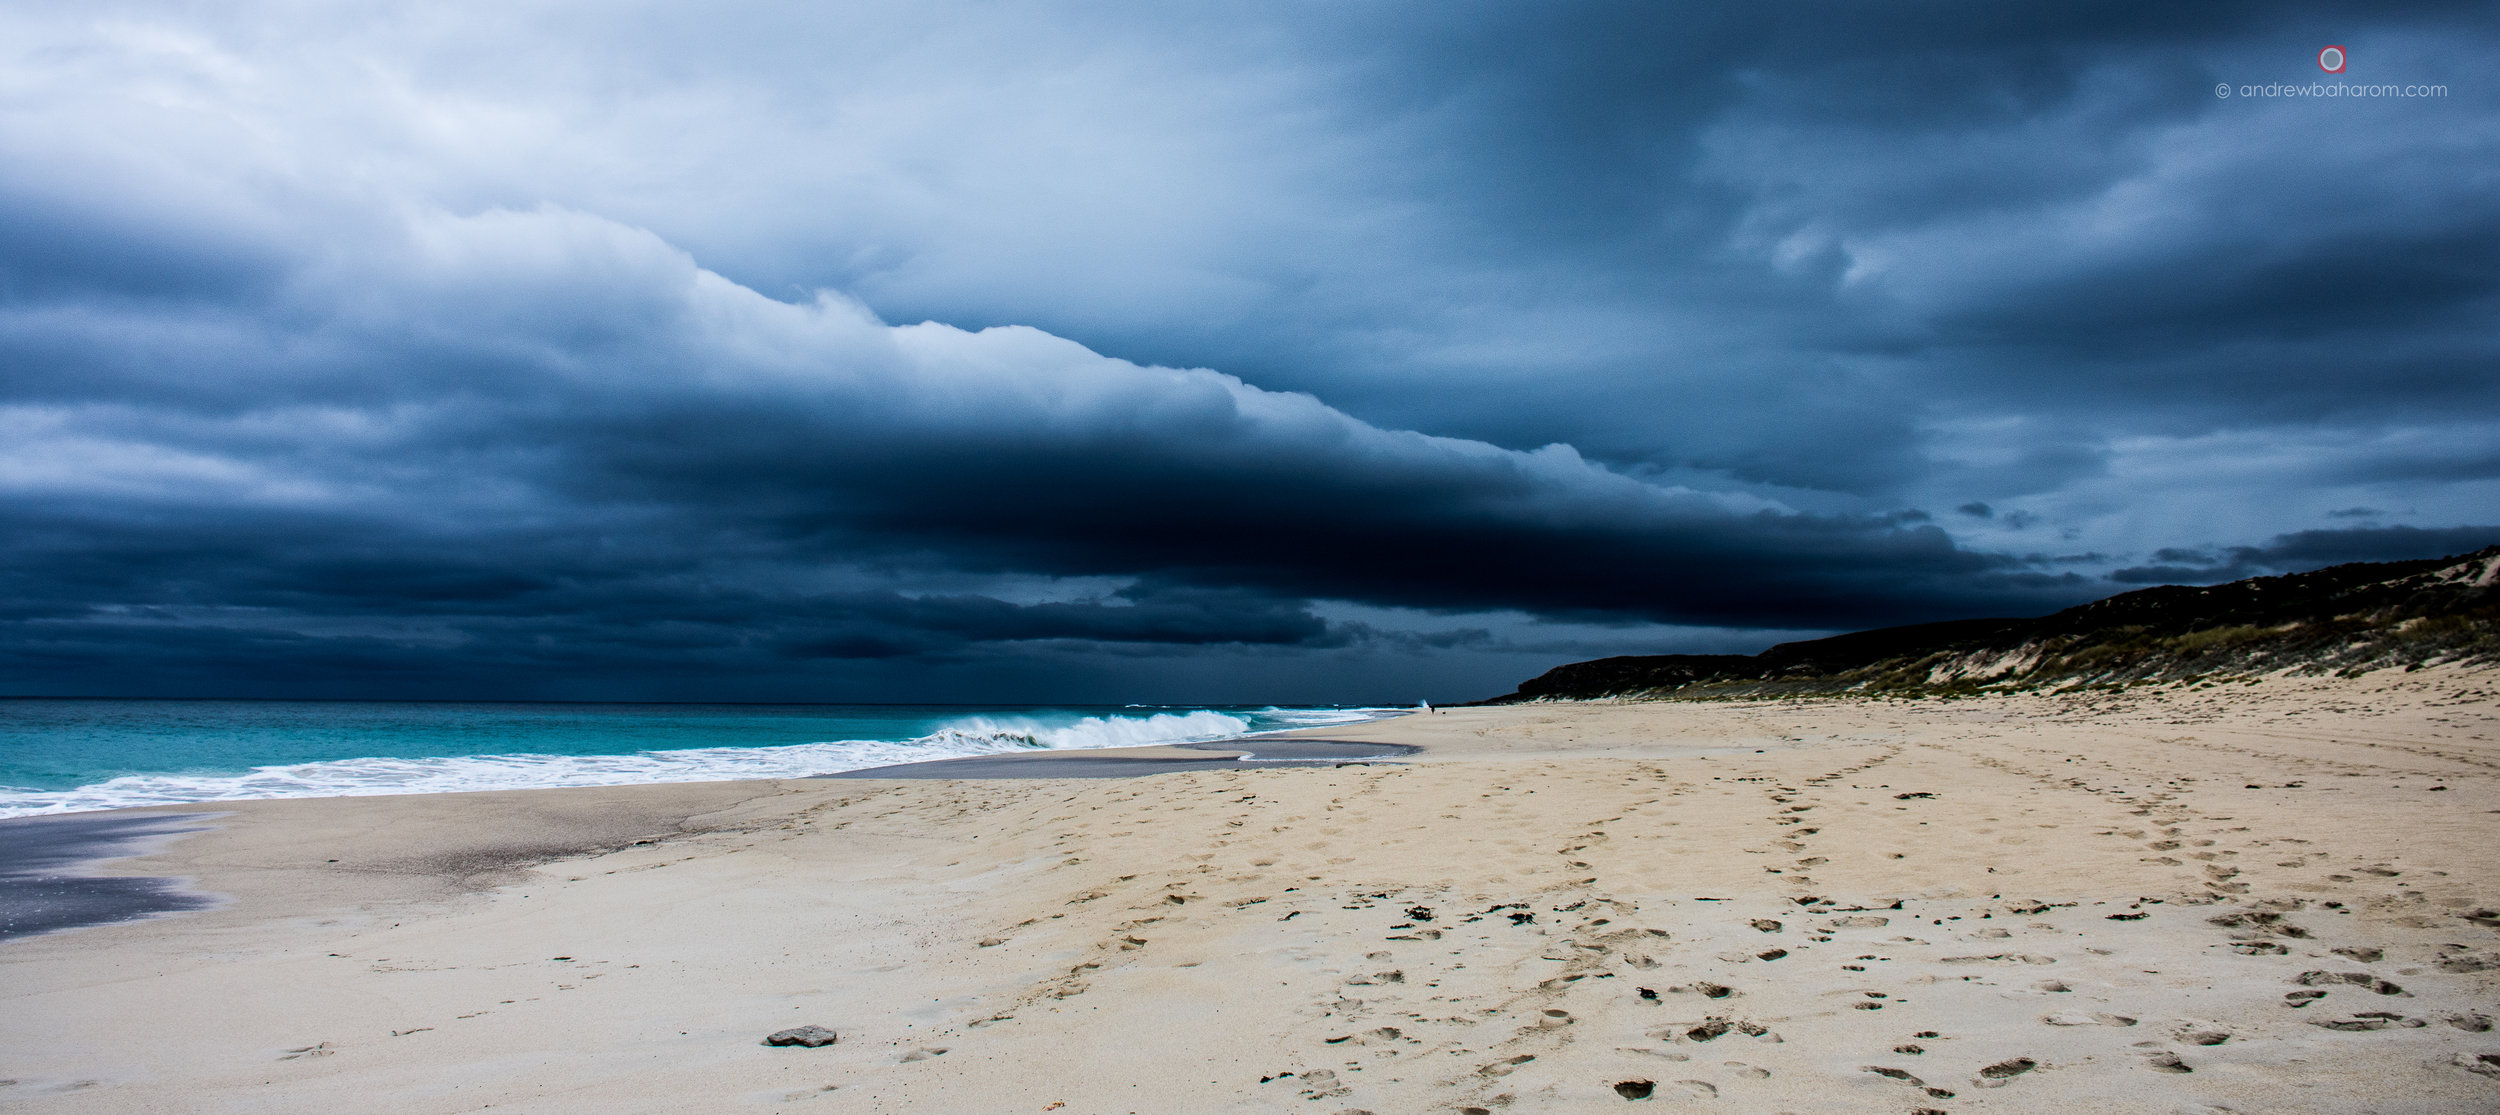 Storm clouds rolling in, over a long stretch of beach on the Cape To Cape Track.